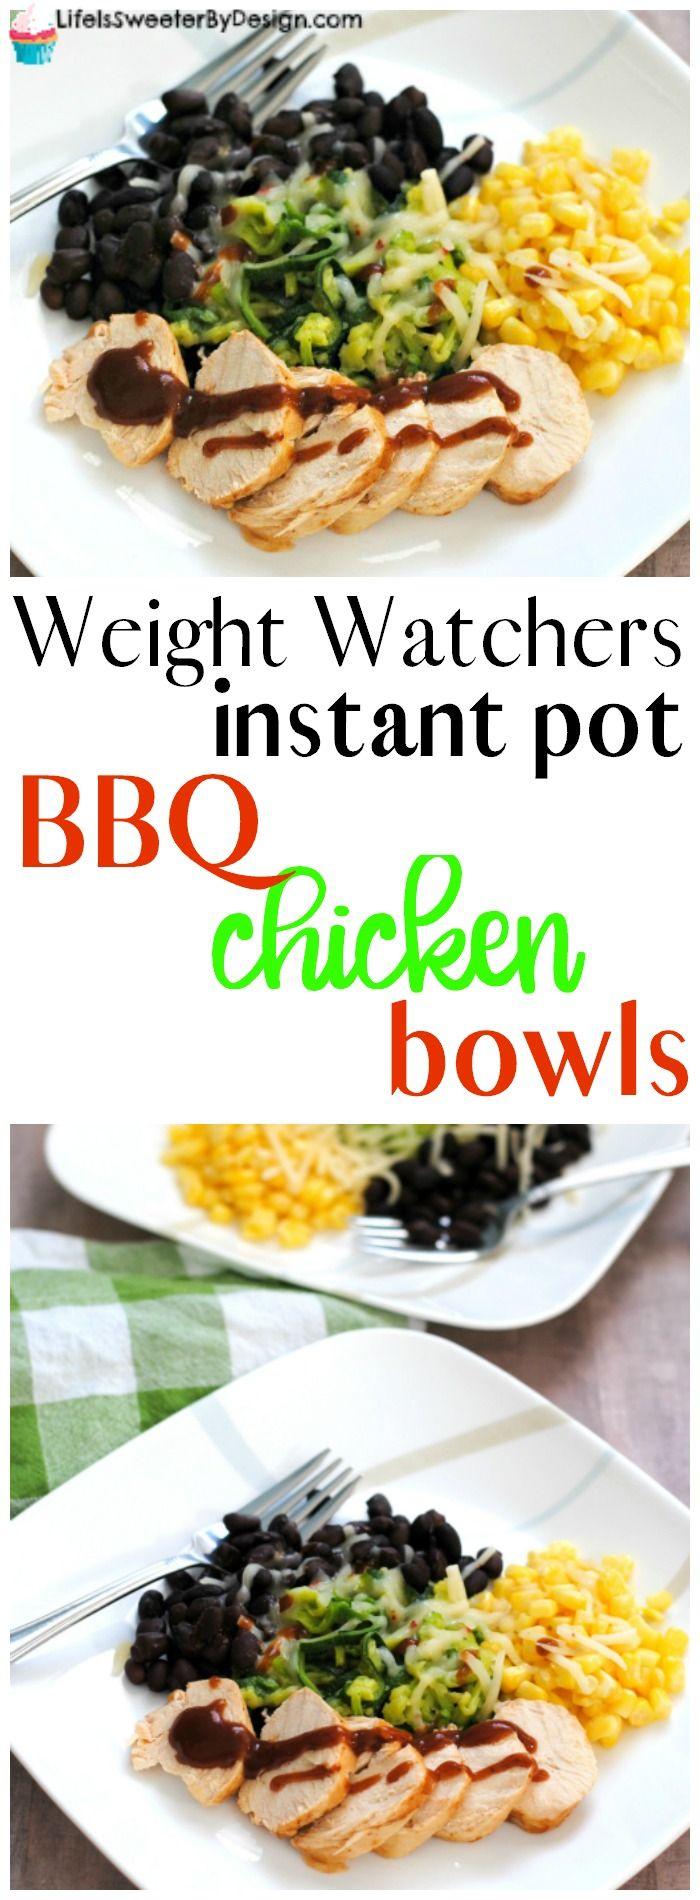 Weight Watchers Instant Pot BBQ Chicken Bowls are easy and delicious. Only 3 Freestyle SmartPoints per serving makes a low point lunch or dinner. Such a great Weight Watchers recipe for your meal plan.